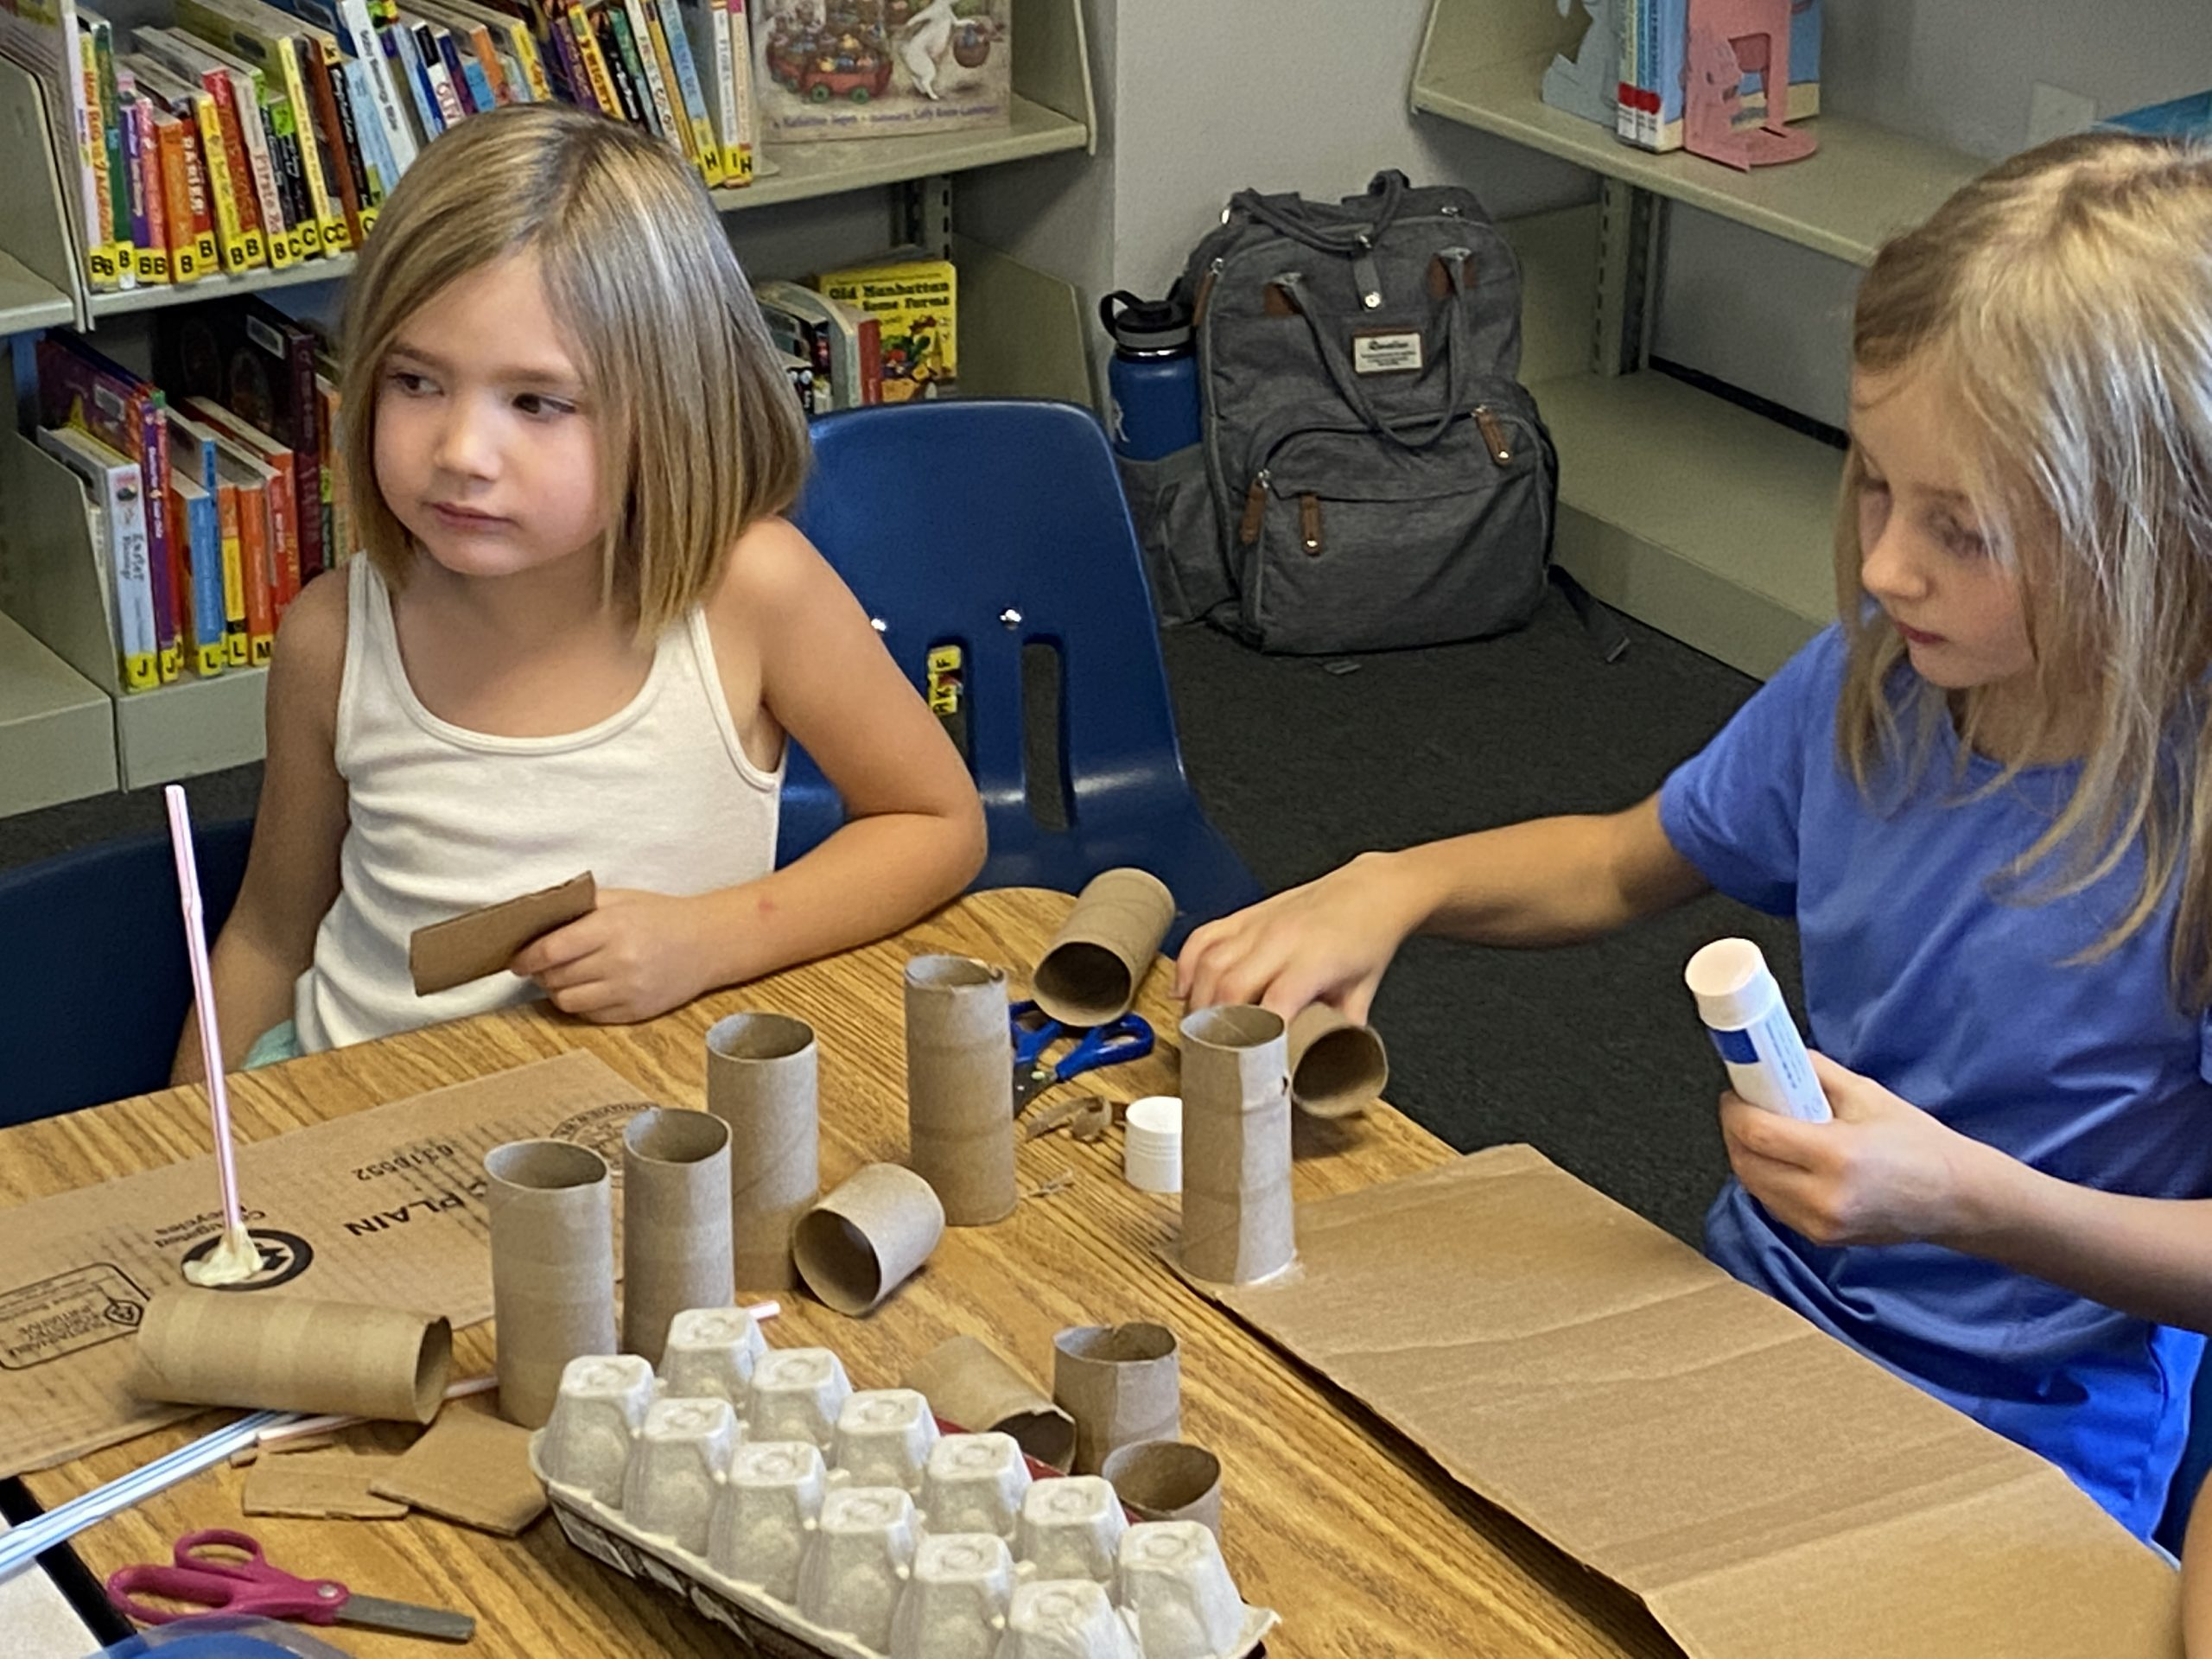 two girls making crafts with toilet paper tubes and cardboard